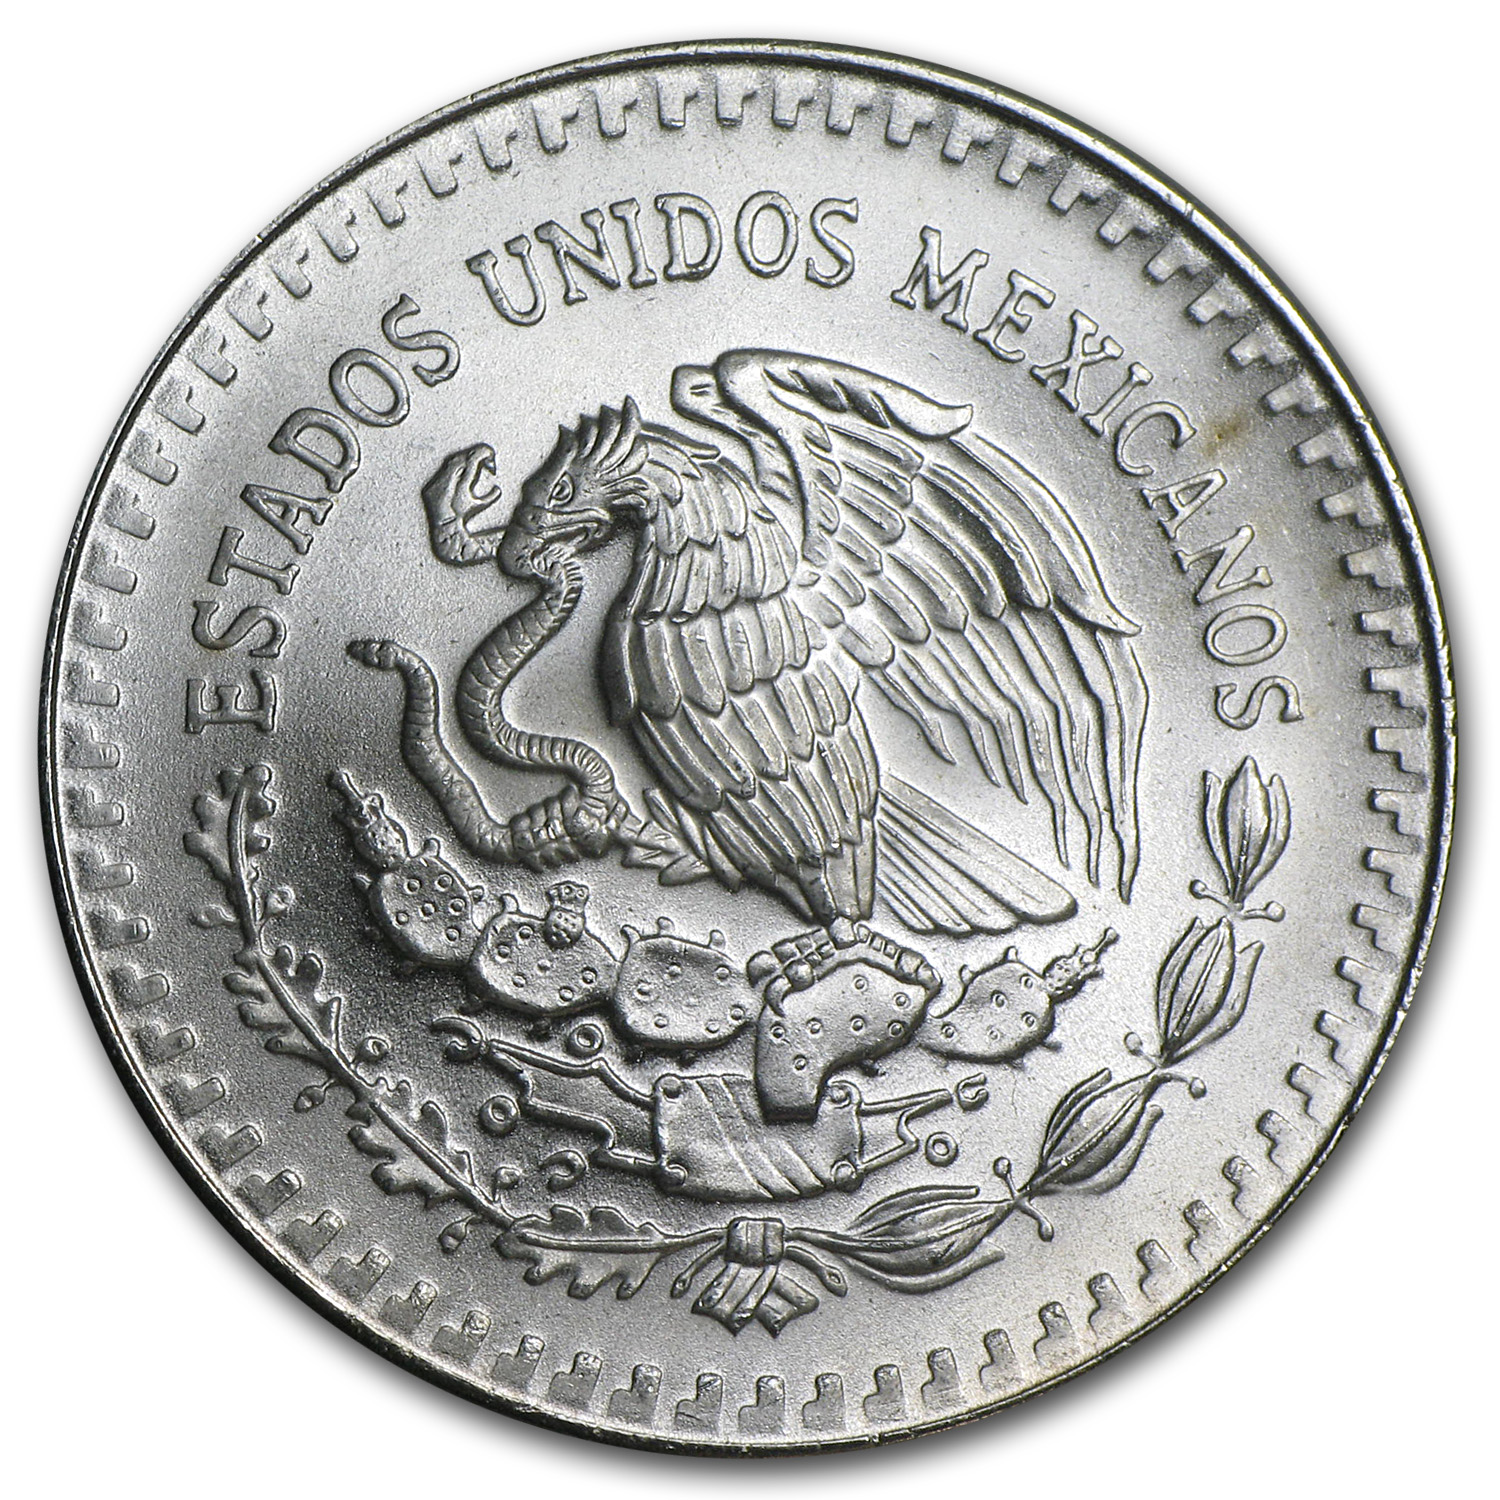 1990 1 oz Silver Mexican Libertad (Brilliant Uncirculated)